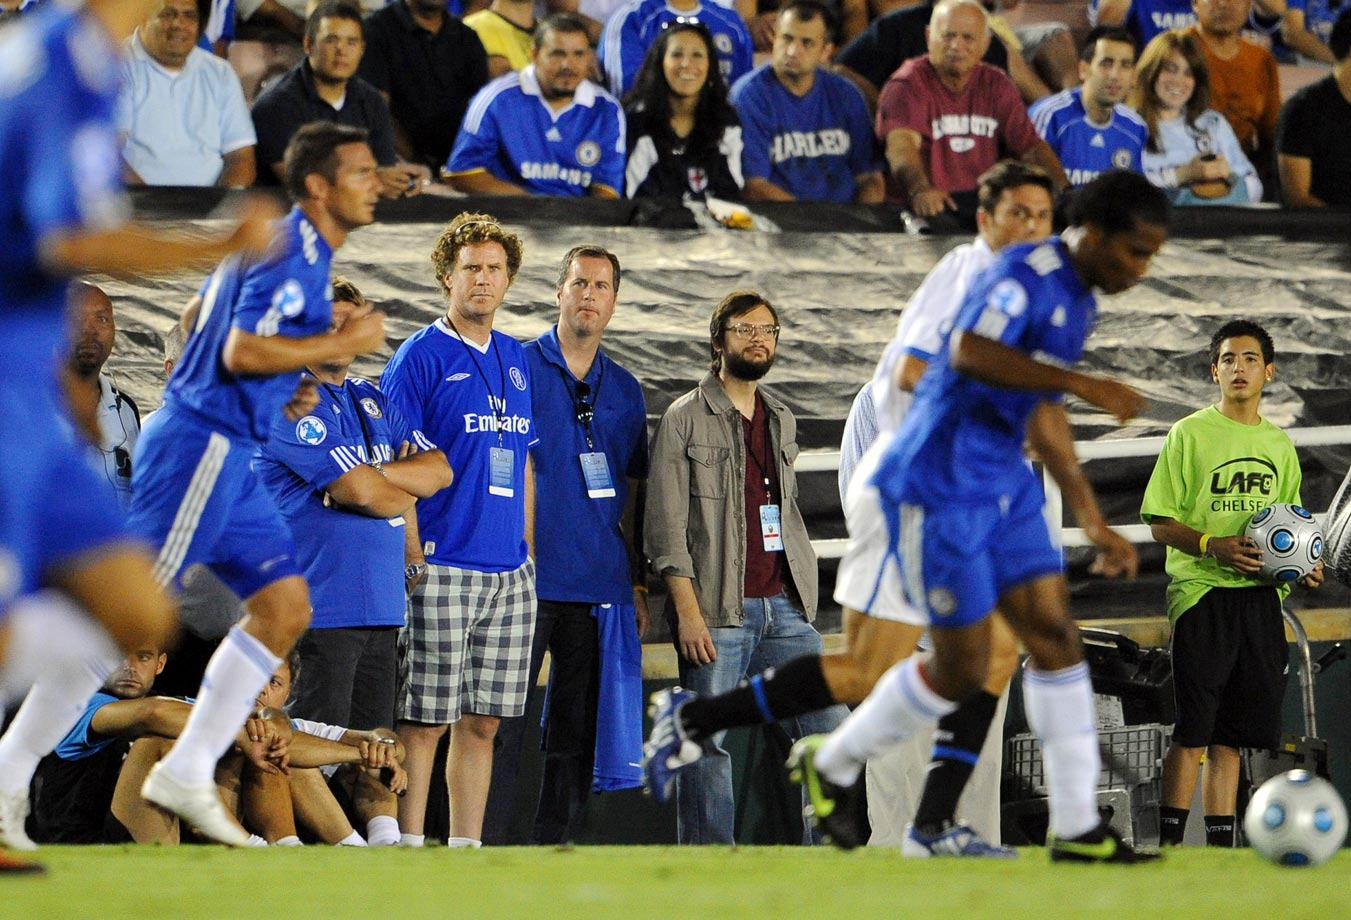 Will Ferrell attends the World Football Challenge between Chelsea and Inter Milan on July 21, 2009 at the Rose Bowl in Pasadena, Calif.